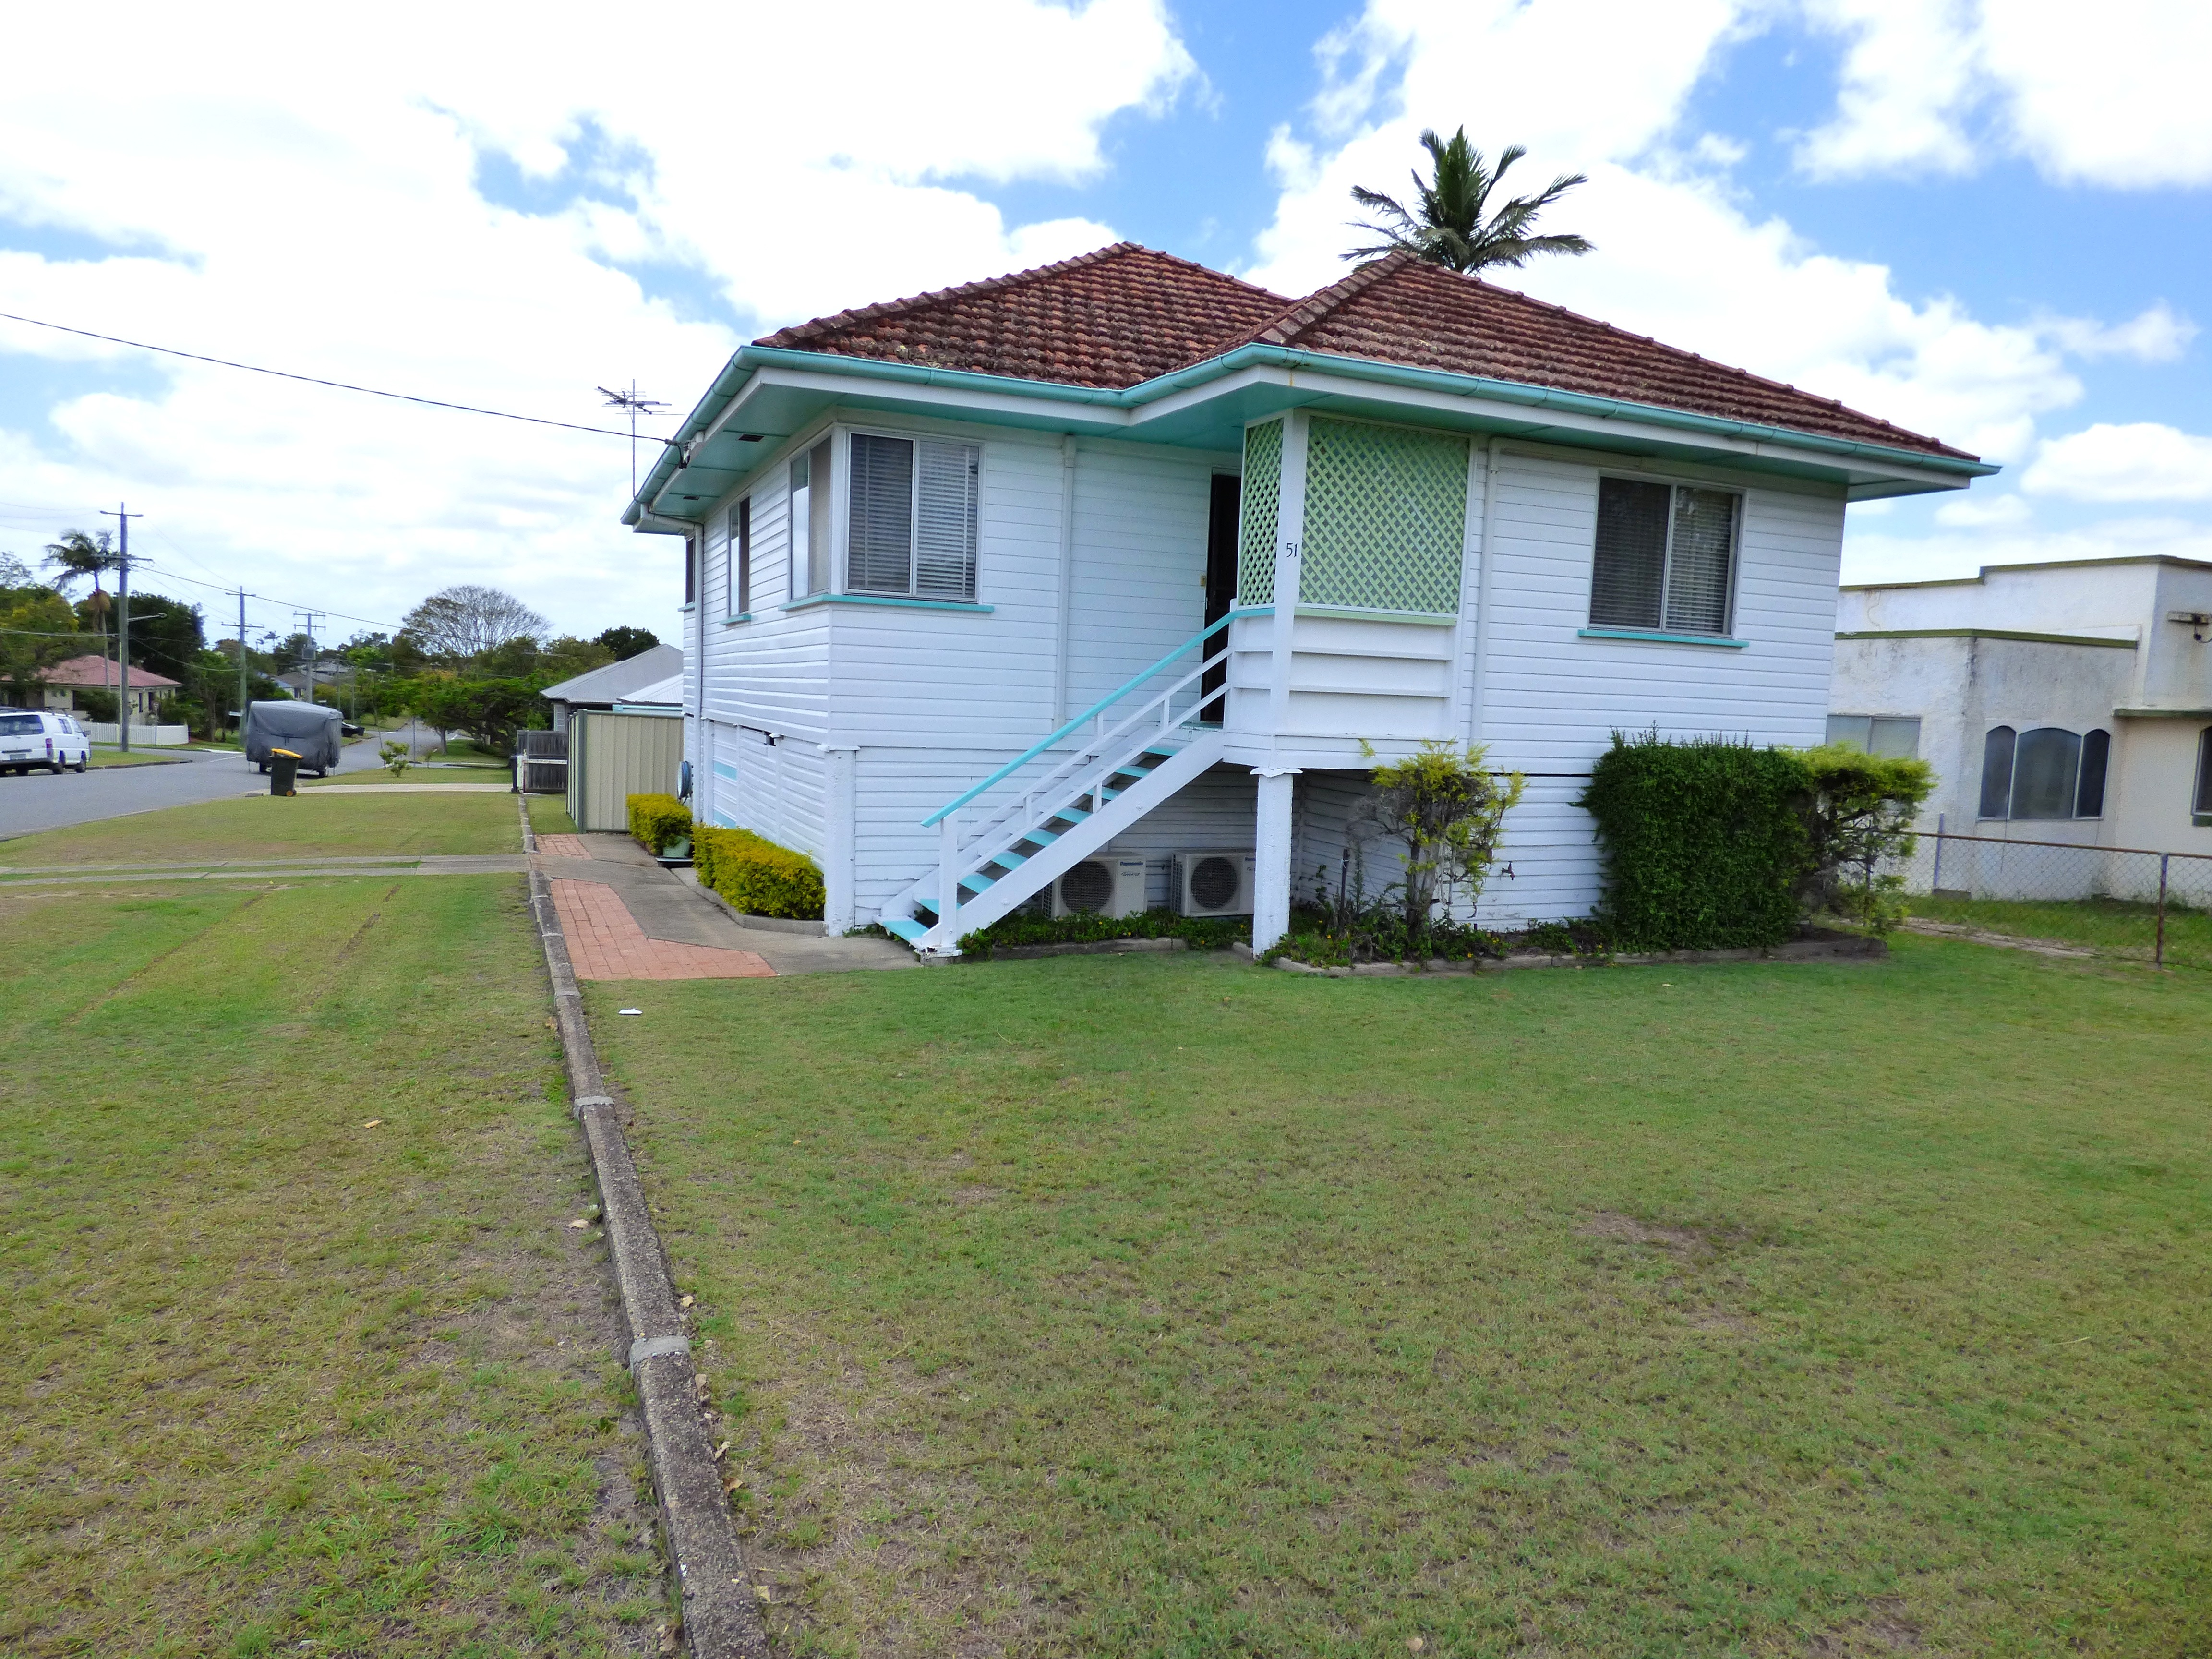 3 BEDROOM HIGH SET HOUSE. SOLID H/WOOD FRAME AND FLOORBOARDS. AIR-CON TO MAIN B'ROOM & LOUNGE. STORAGE UNDER + REAR SHED. $655,000